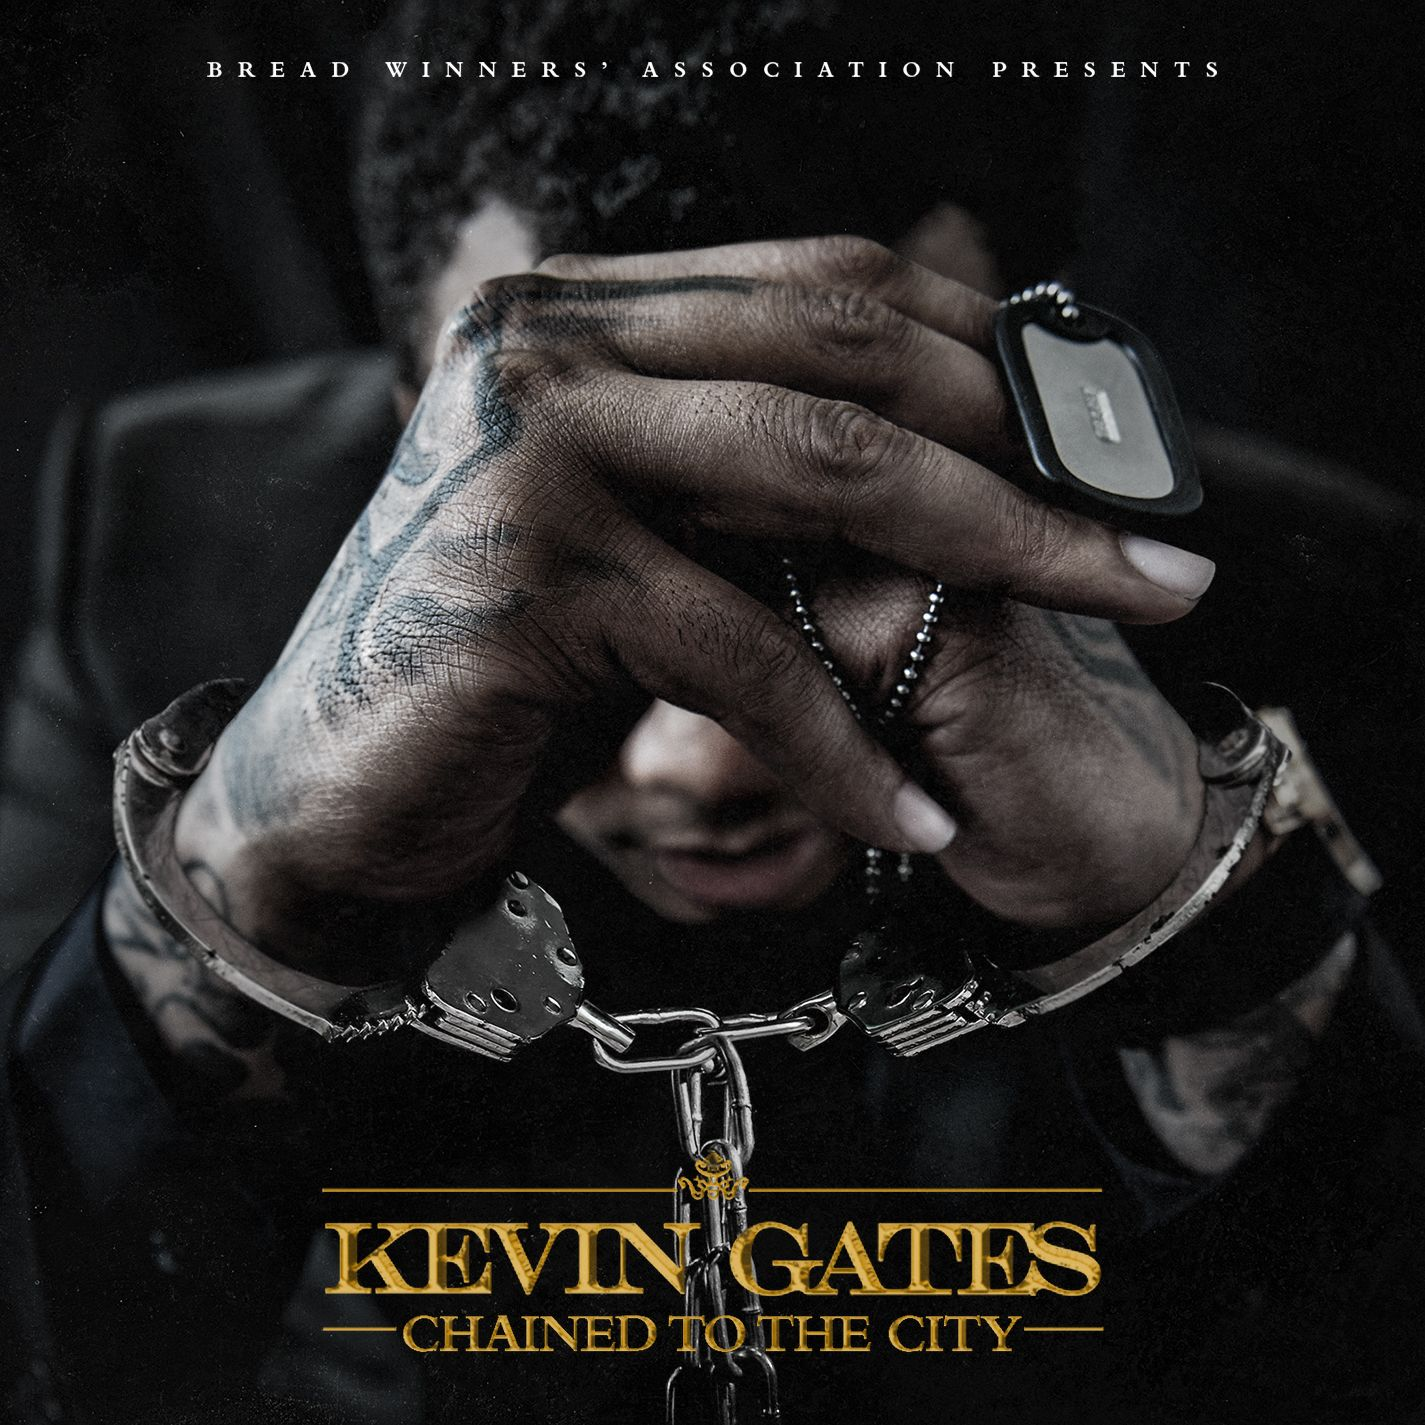 Kevin Gates Radio: Listen to Free Music & Get The Latest